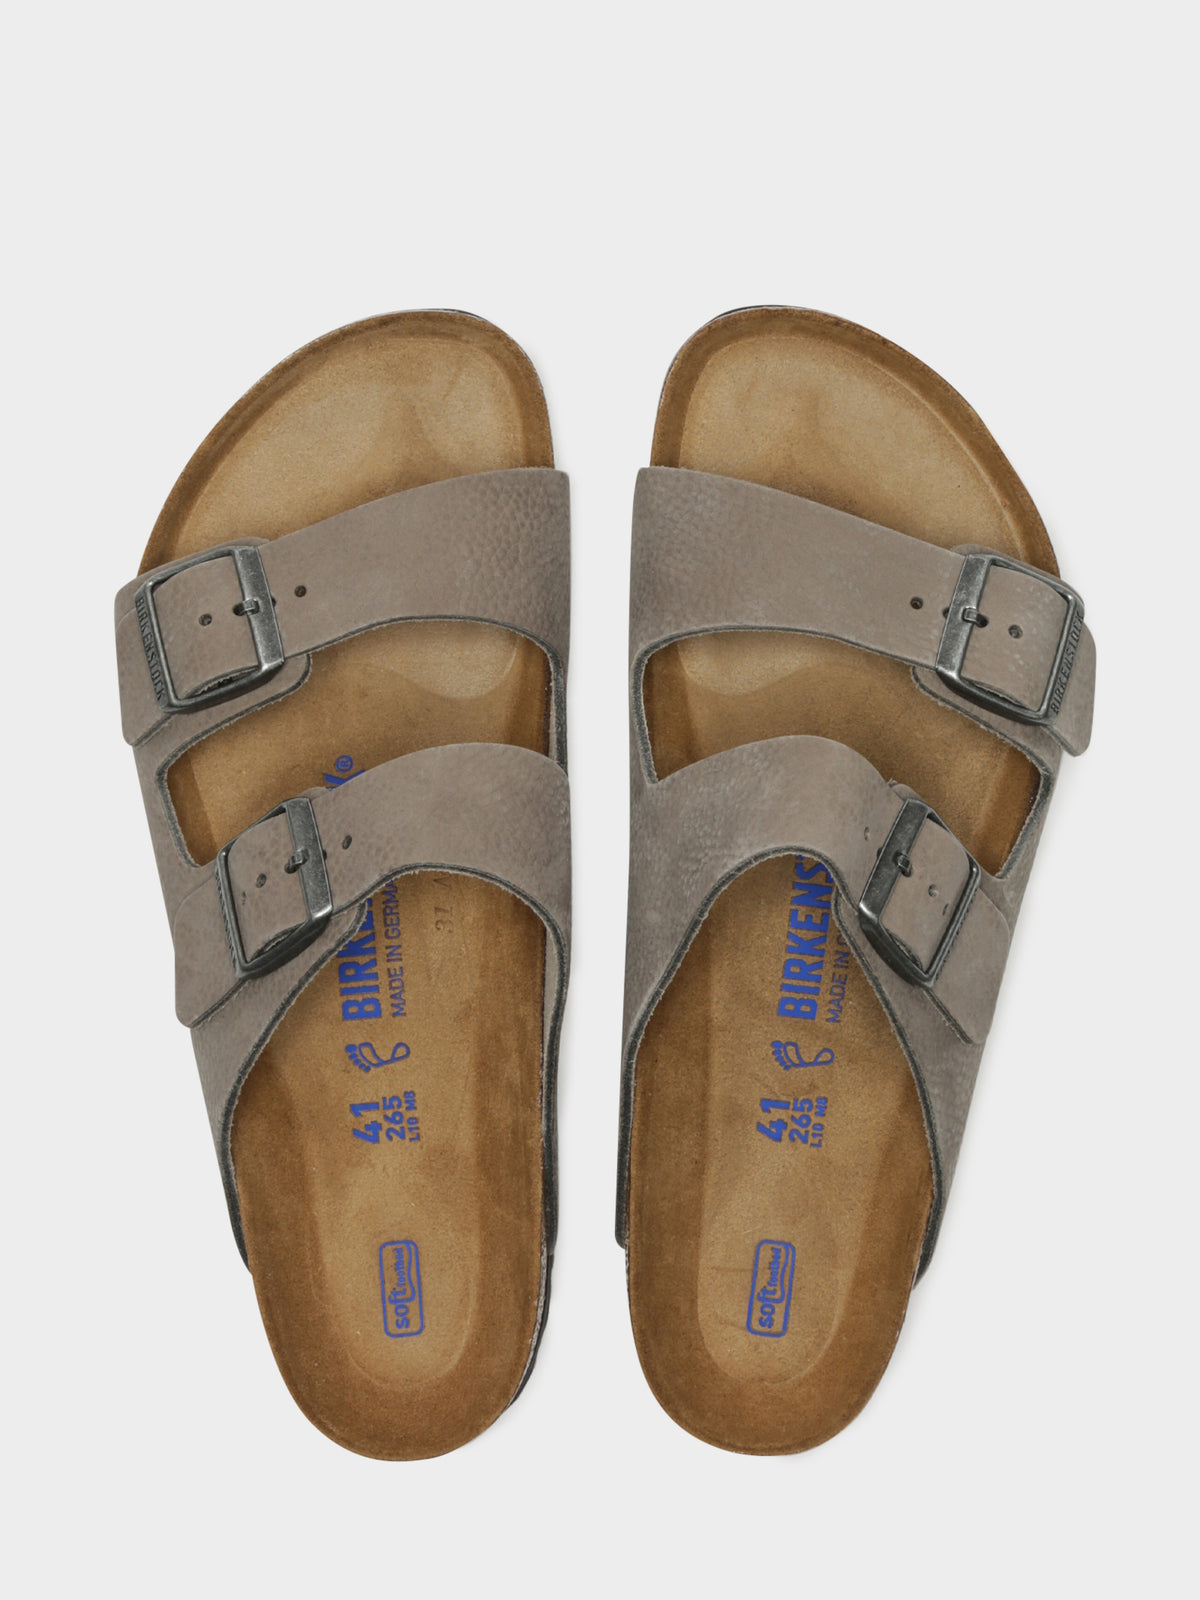 Unisex Arizona Sandal in Soft Whale Grey